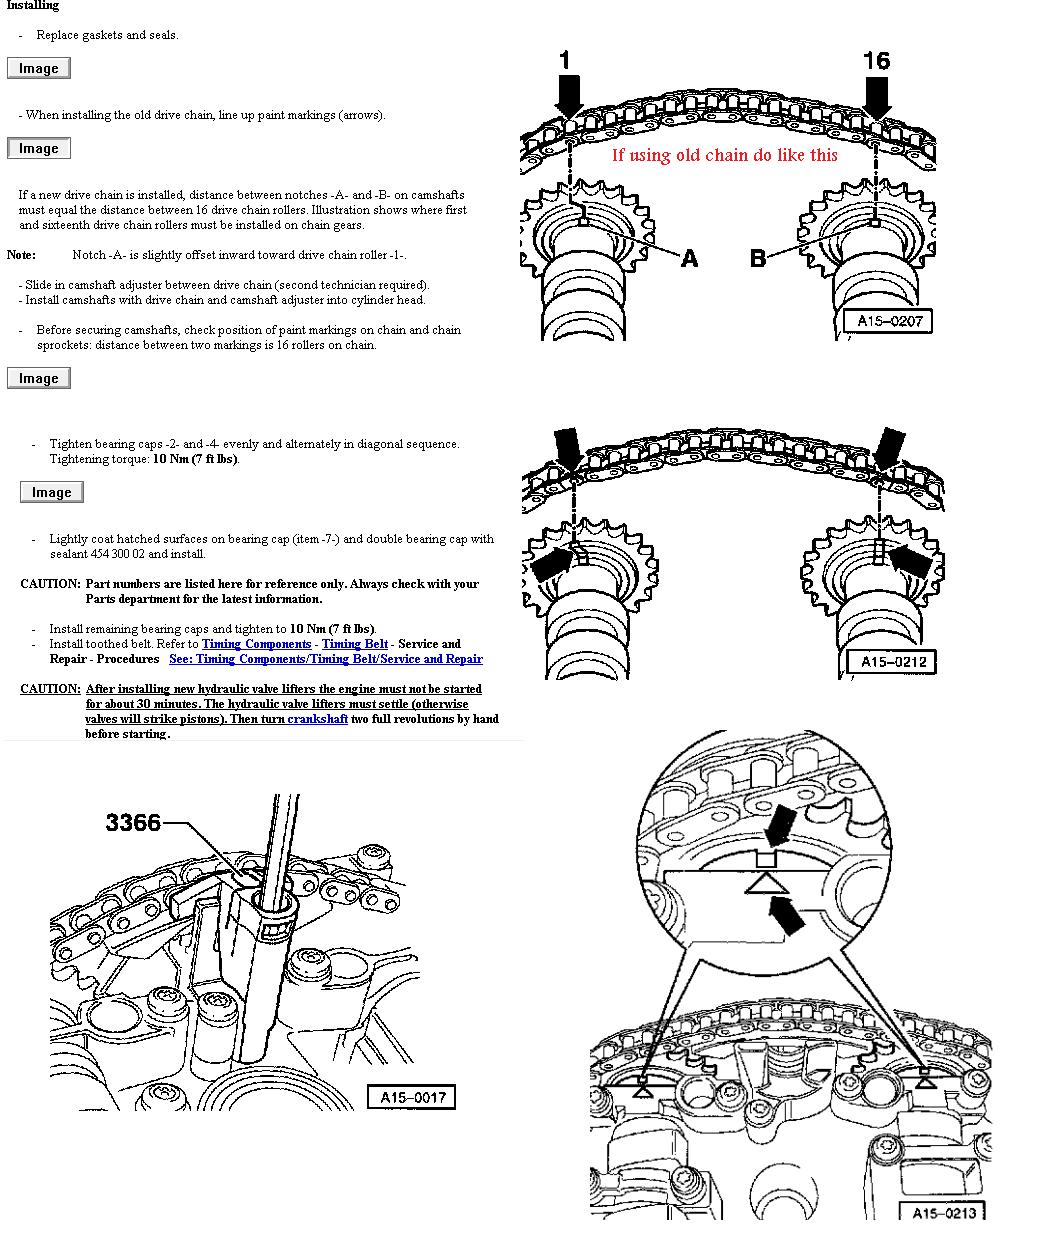 1 8t Crankcase Breather Hose Diagram Engine Diagram And